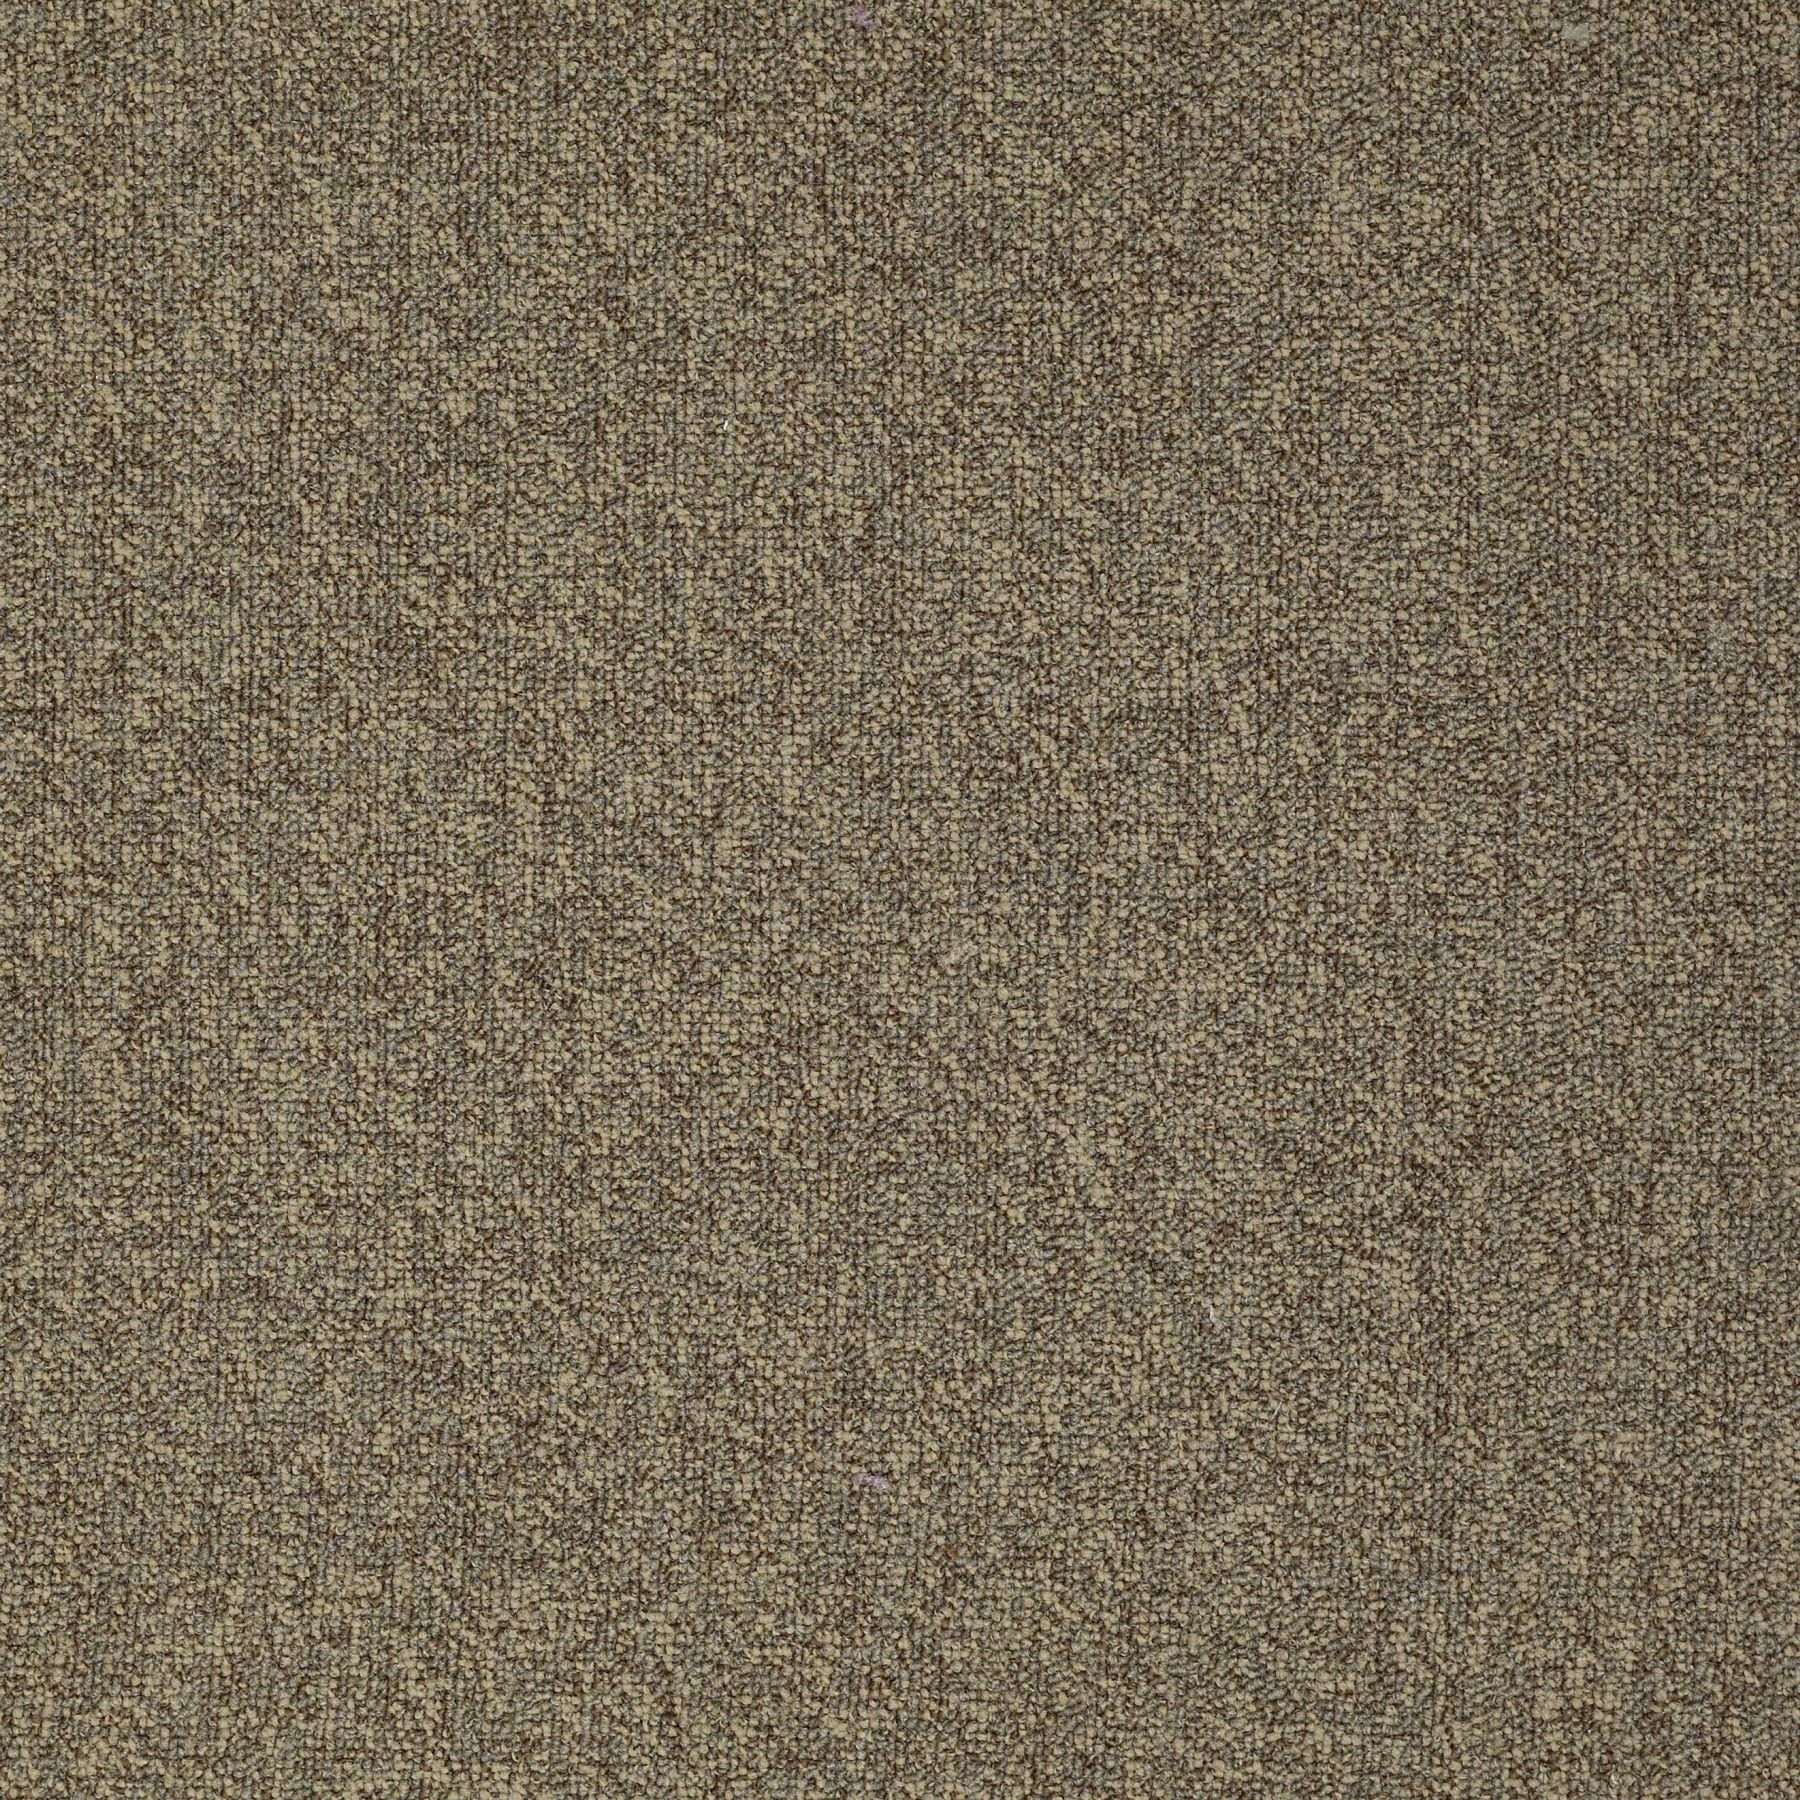 54677 Scoreboard II 26 SLP Color 00110 Play Off Commercial Carpet